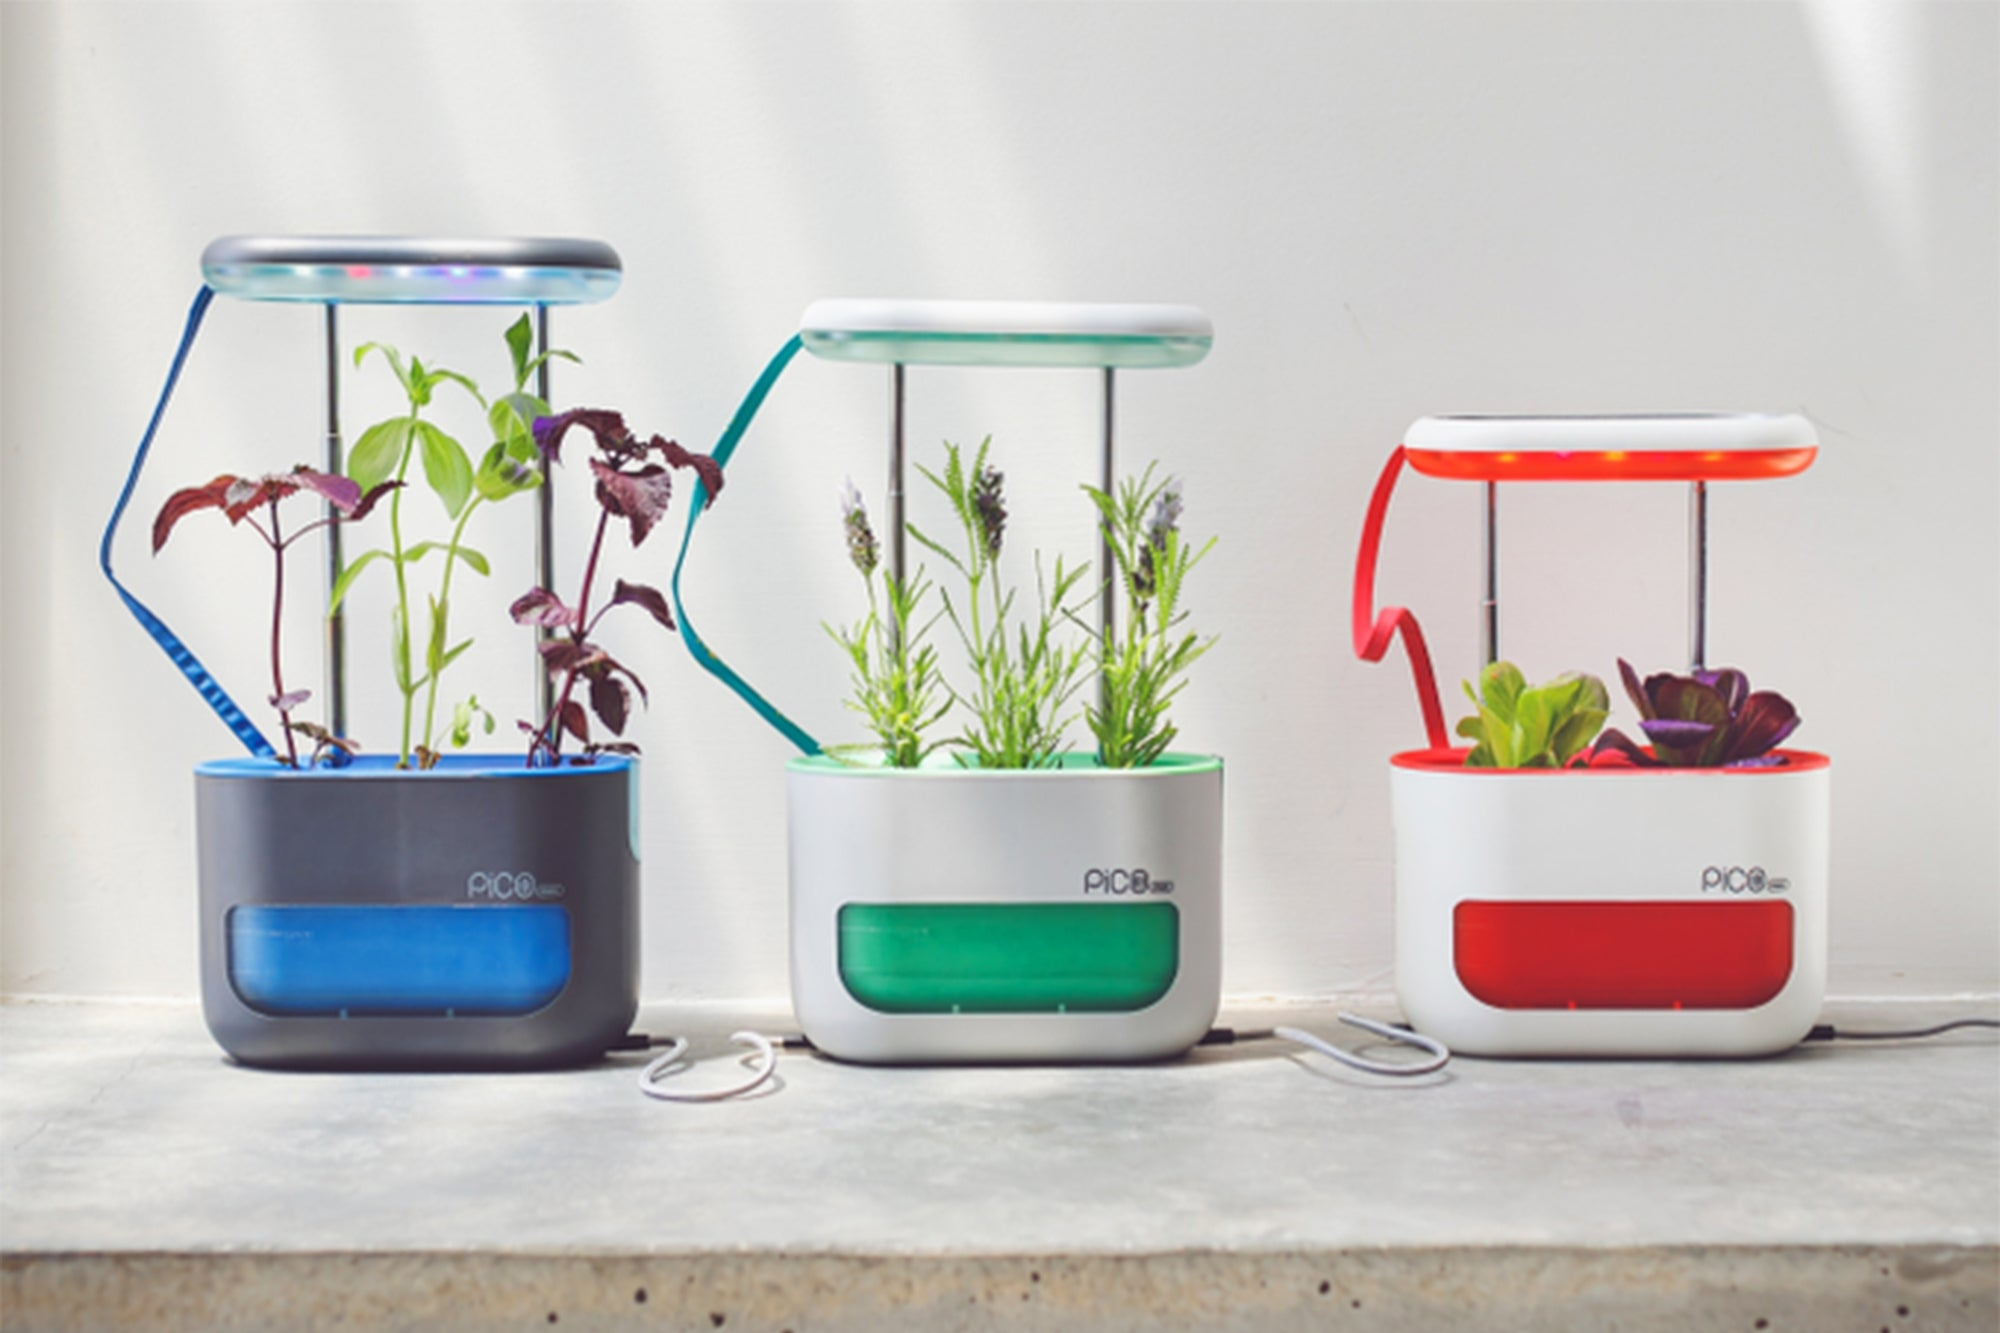 Pico Max Is a New Kind of Indoor Garden Kit for Herbs and More